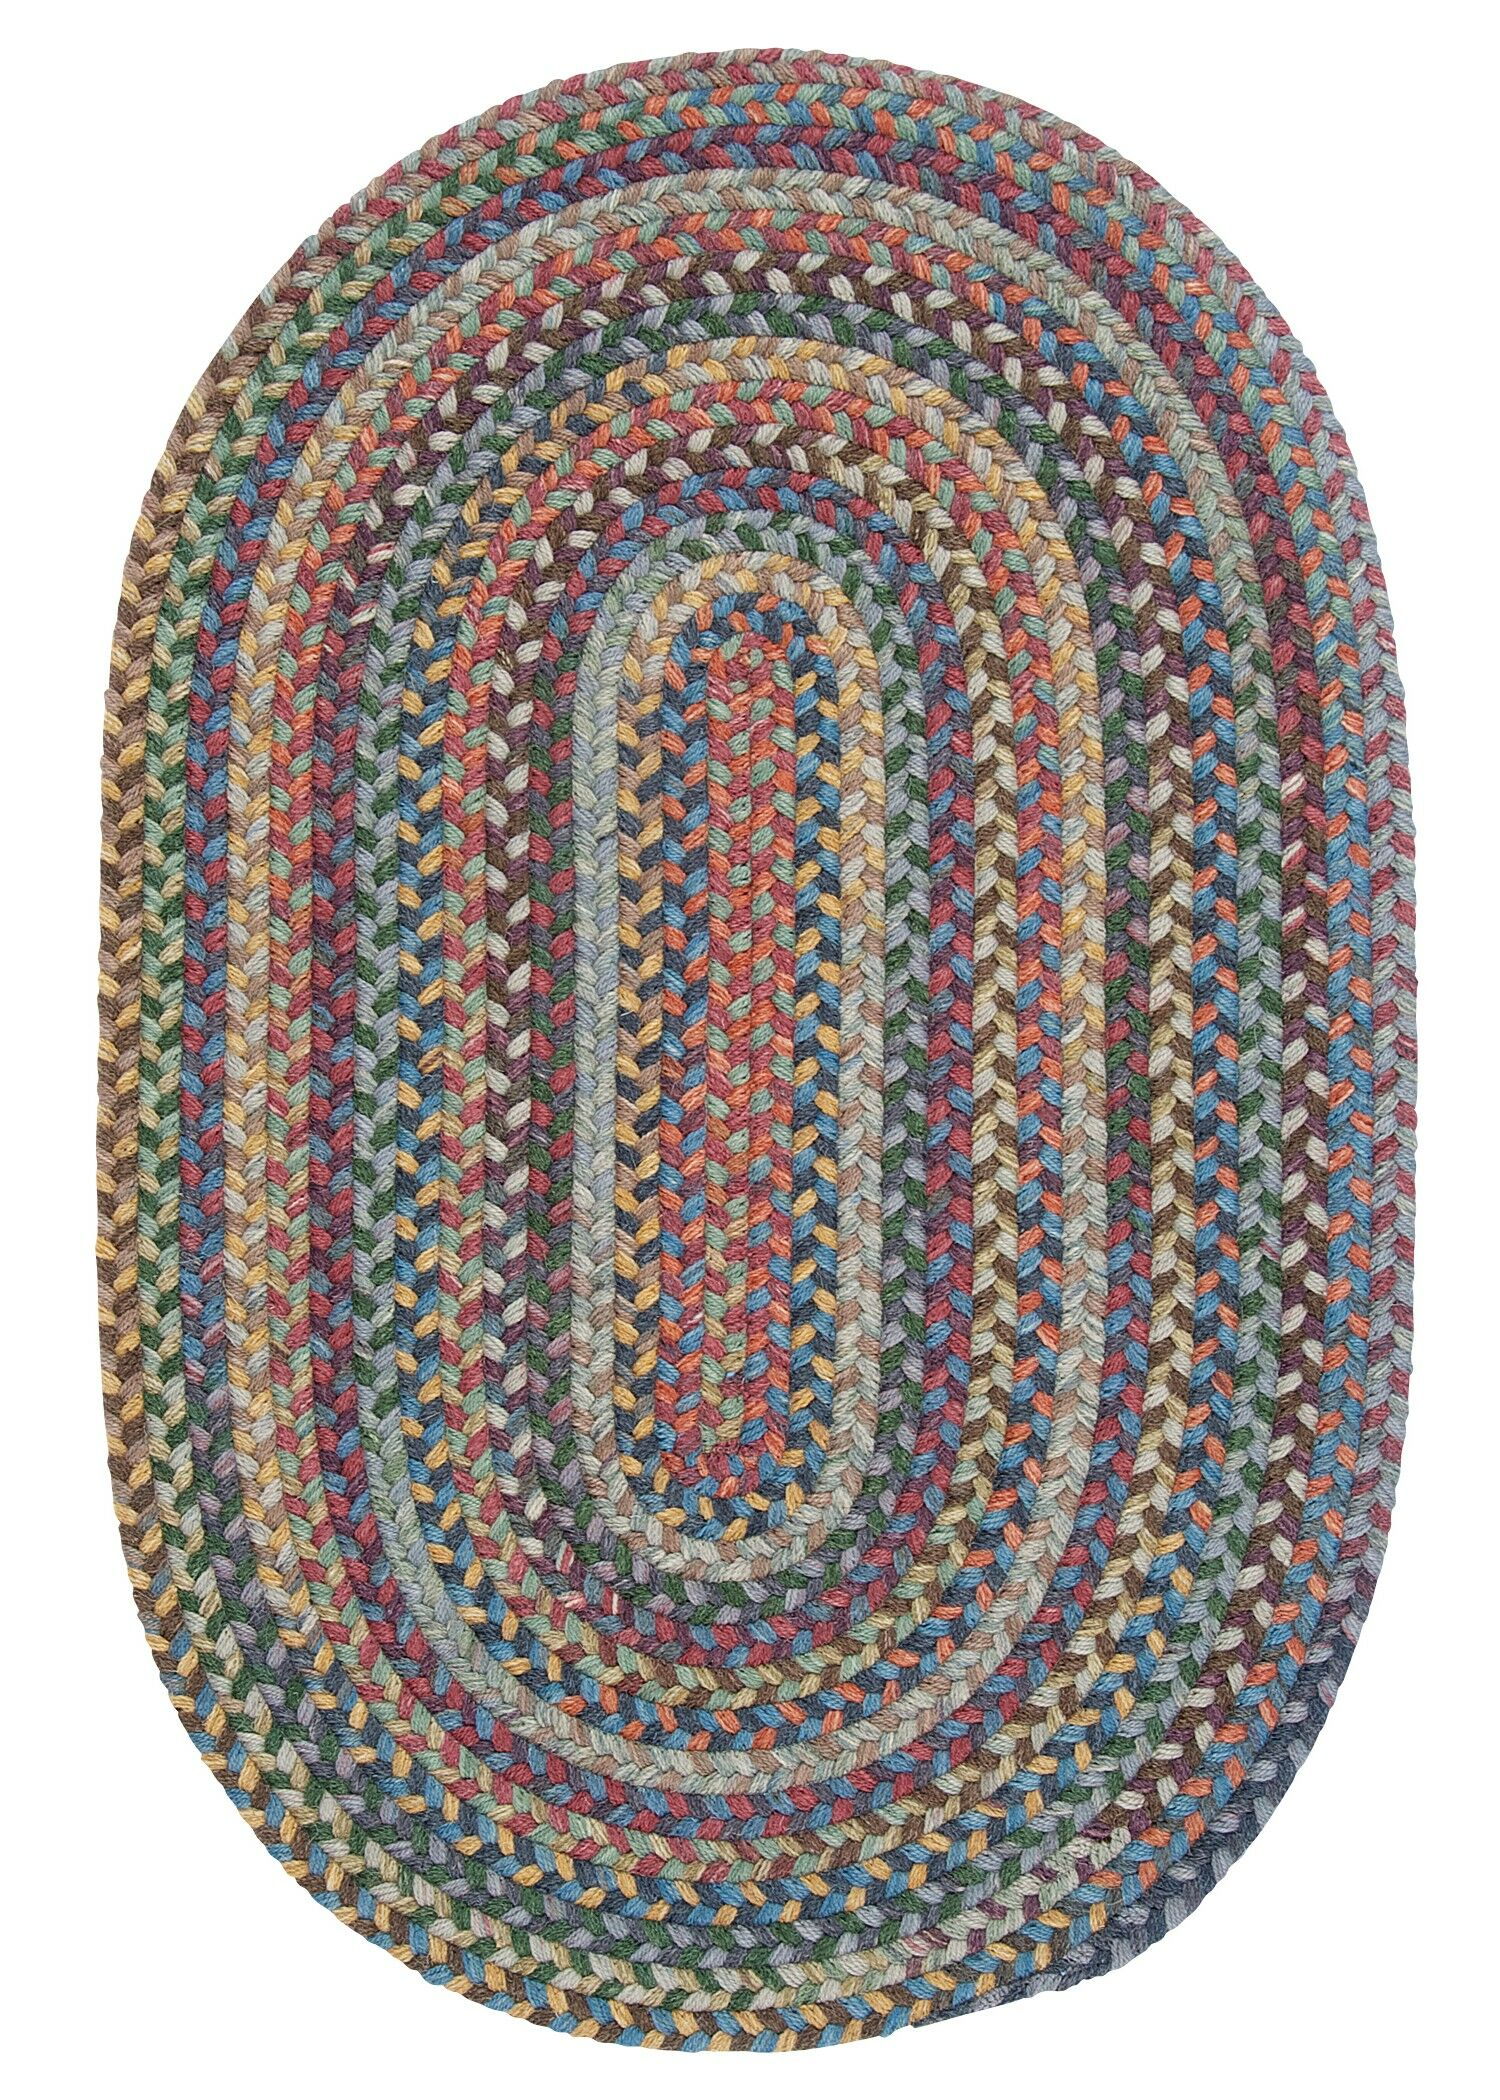 Morris Hand-Woven Wool Red/Brown Area Rug Rug Size: Oval 8' x 11'